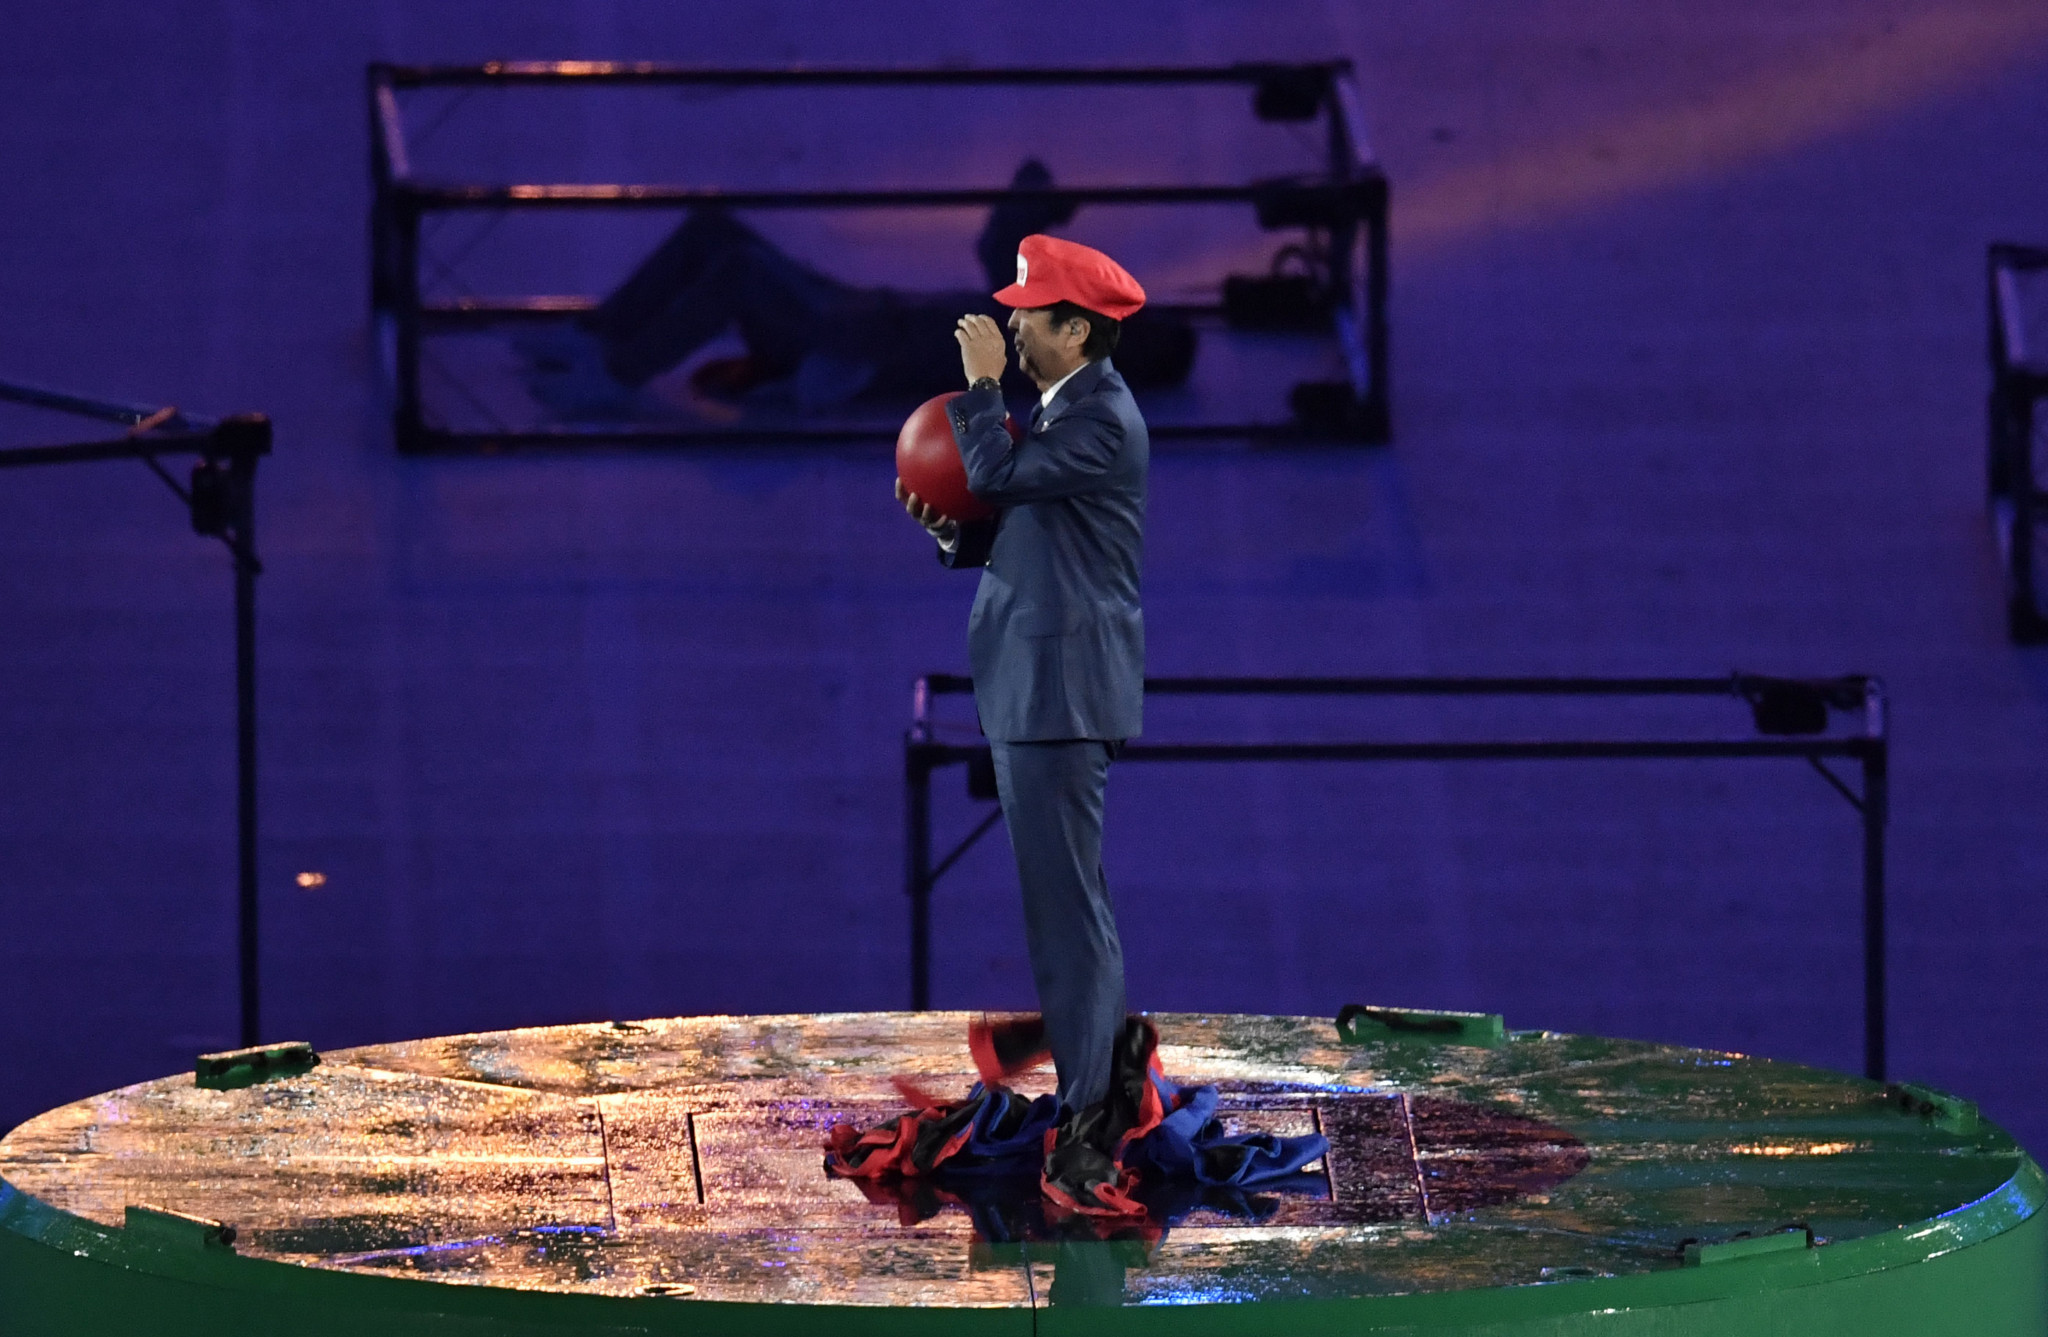 Shinzō Abe's appearance as Super Mario at the Rio 2016 Closing Ceremony showed his commitment to Tokyo 2020 ©Getty Images